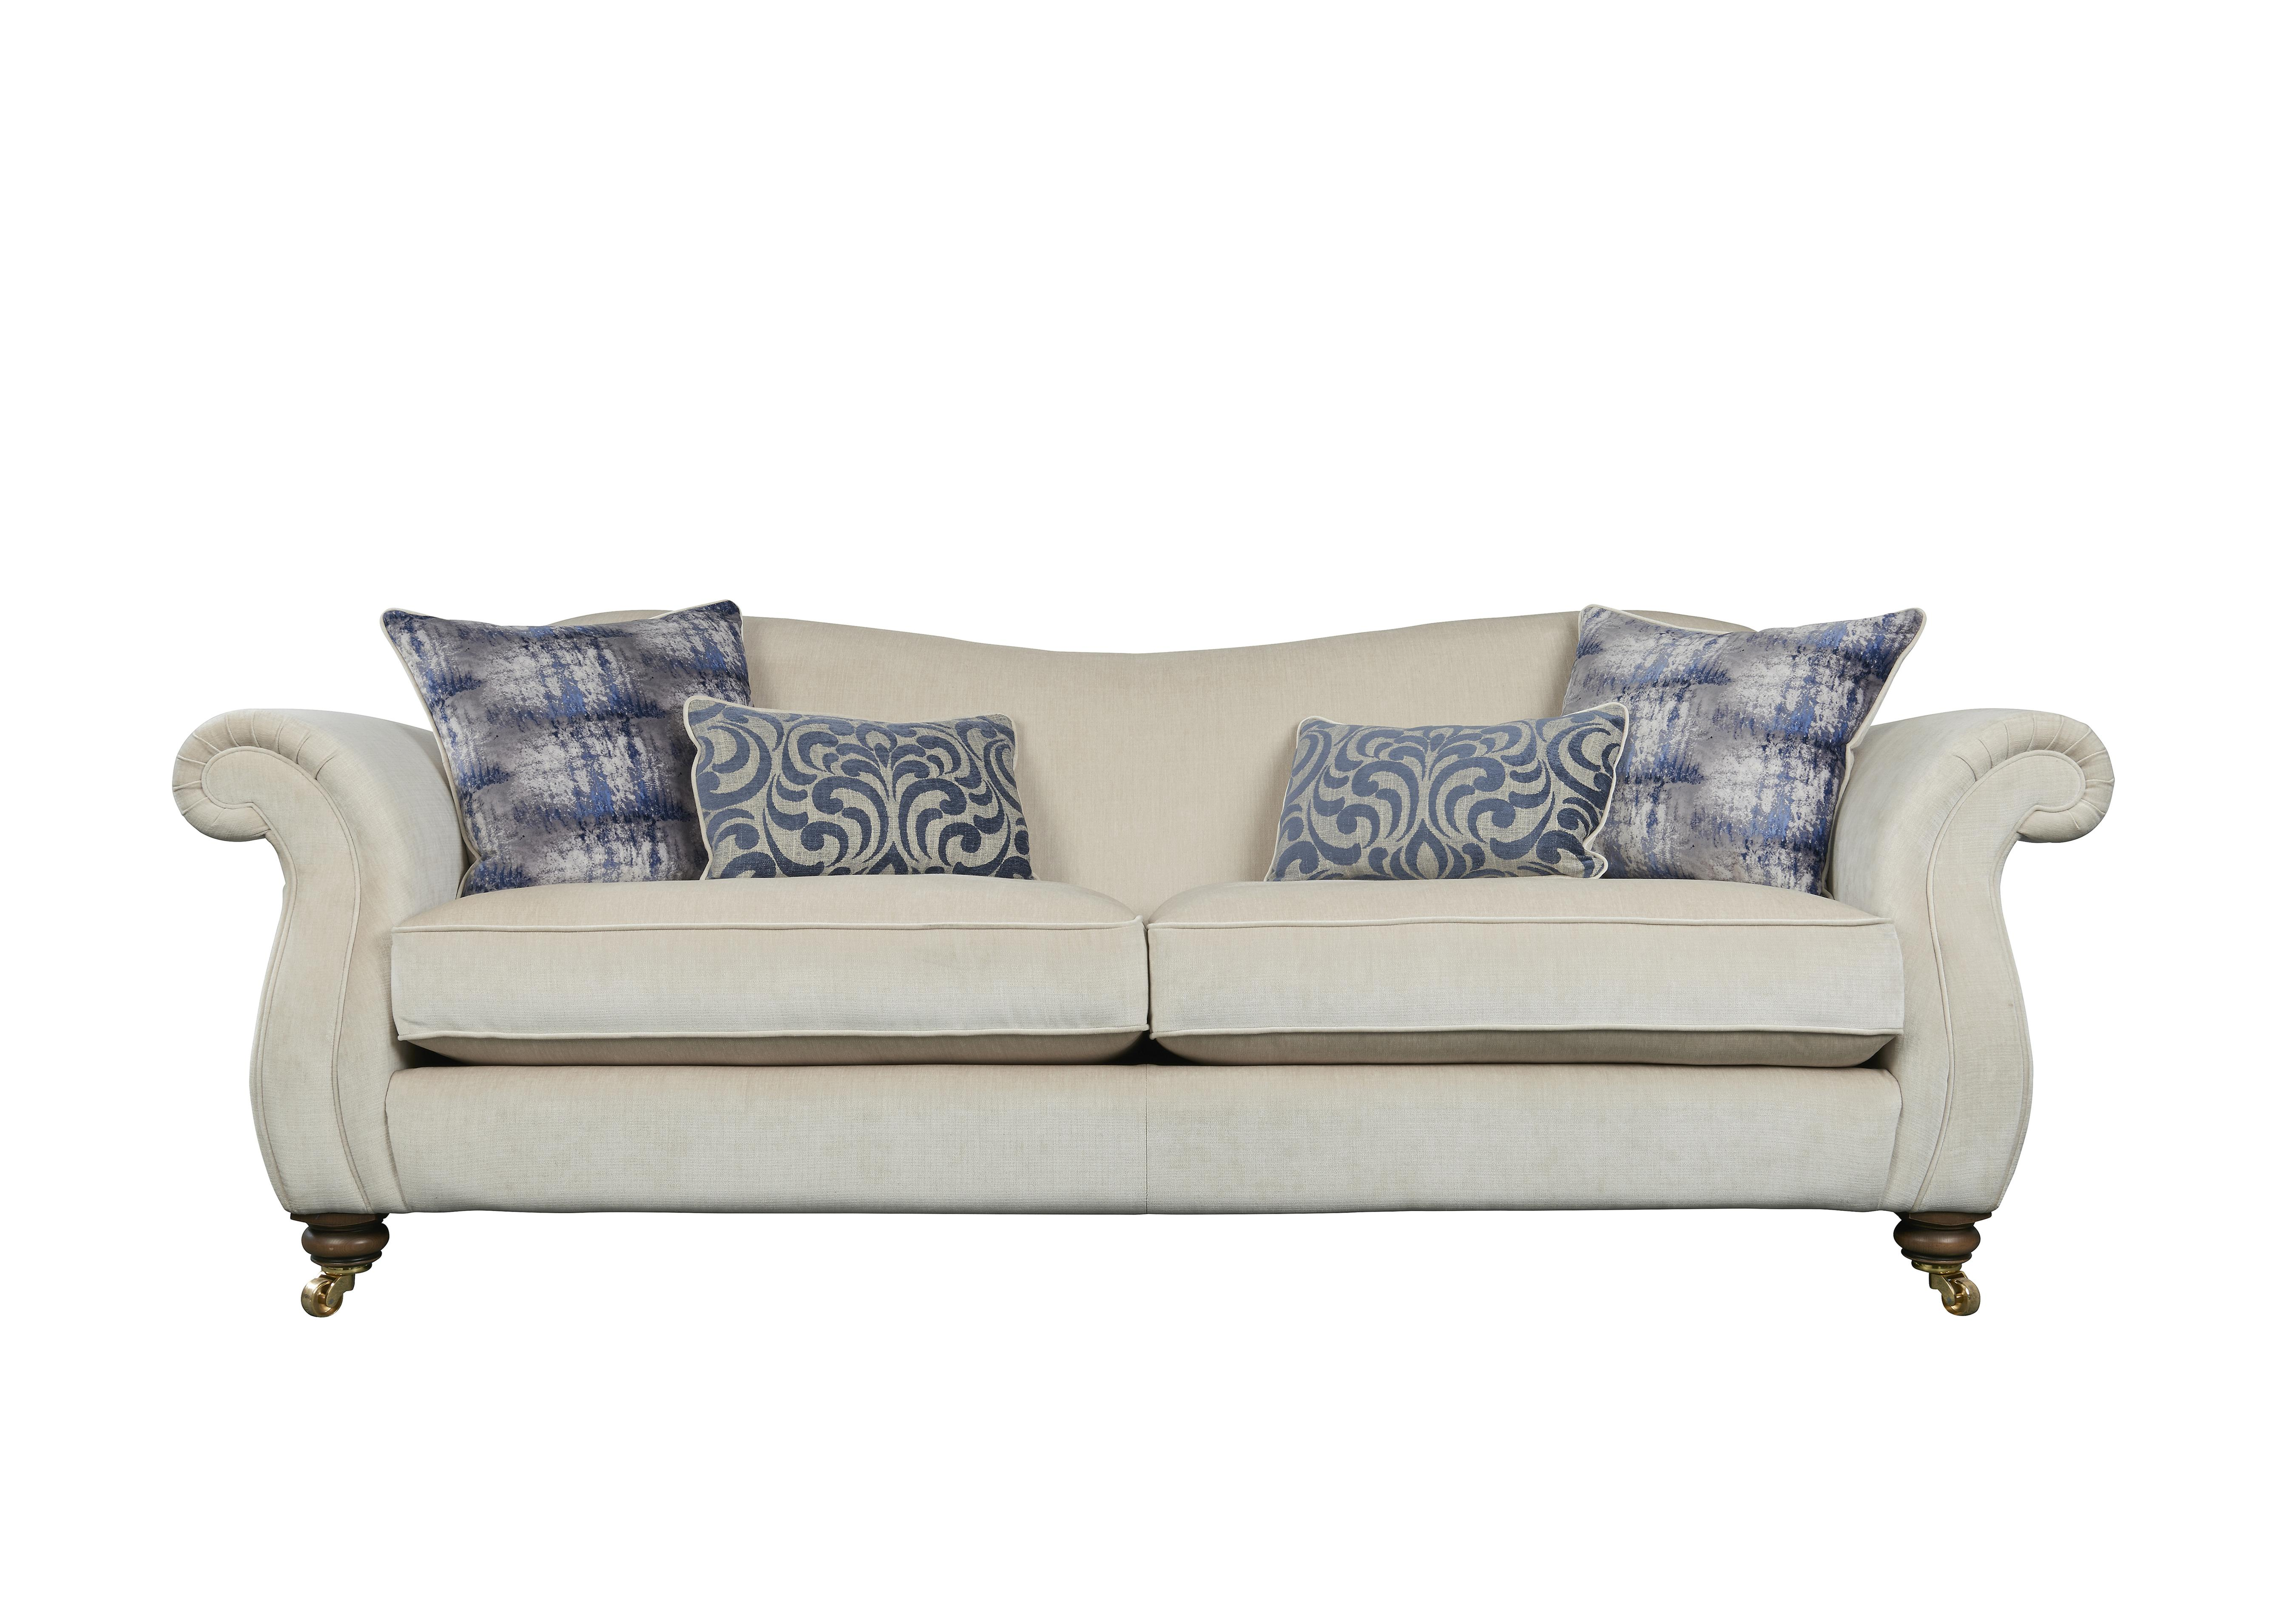 htl sofa stockists uk go fabric recliner corner group the derwent collection cavendish 4 seater parker knoll furniture village